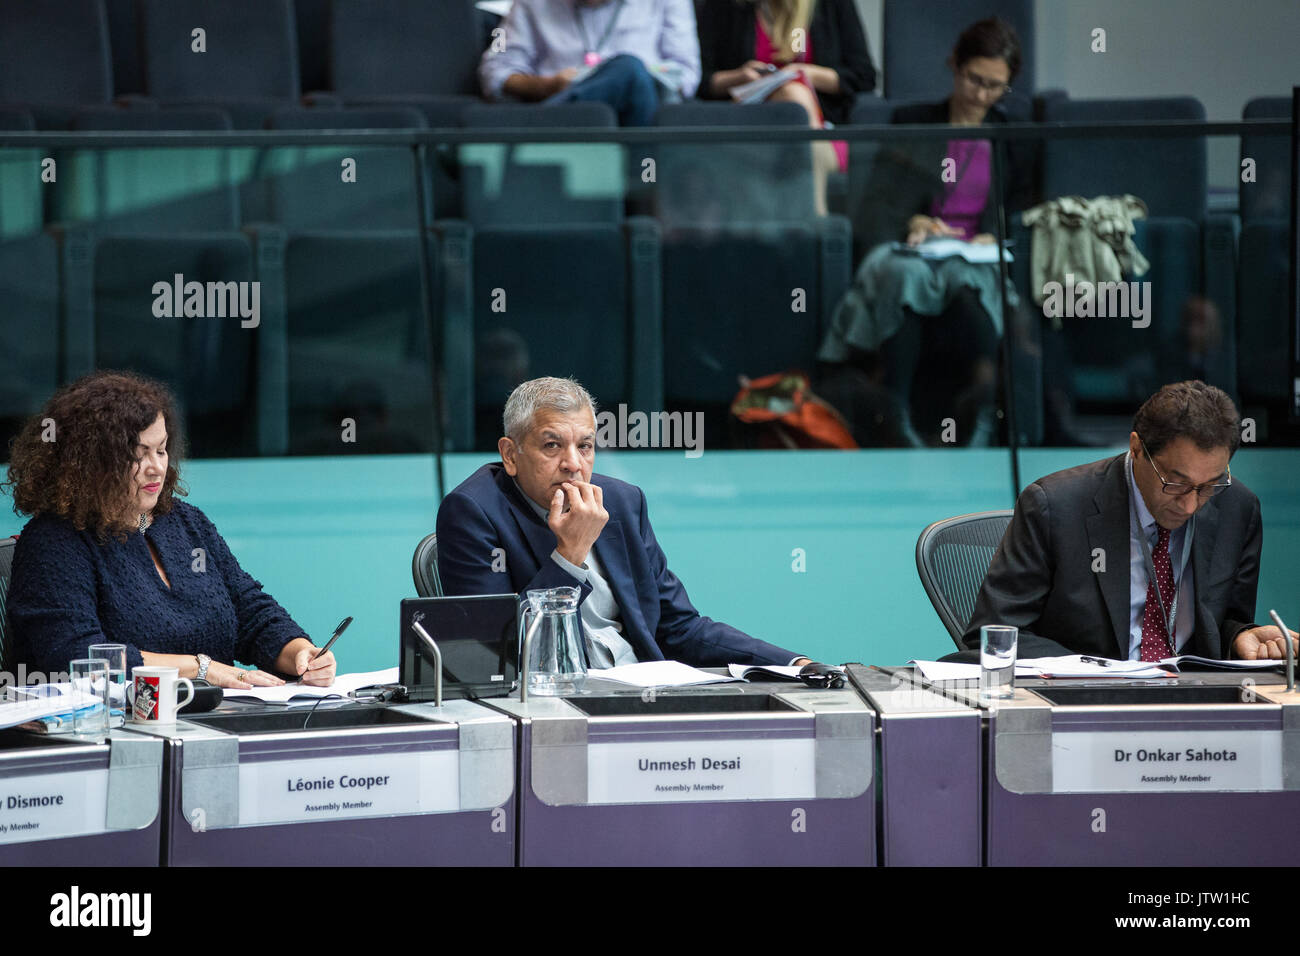 London, UK. 10th August, 2017. London Assembly Members Leonie Cooper, Unmesh Desai and Dr Onkar Sahota listen to Mayor of London Sadiq Khan responding to questions during Mayor's Question Time at City Hall. Among topics discussed were: acid attacks, social housing, expenditure on fire and police services, 4G coverage on underground trains and noise from overnight underground trains. Credit: Mark Kerrison/Alamy Live News - Stock Image